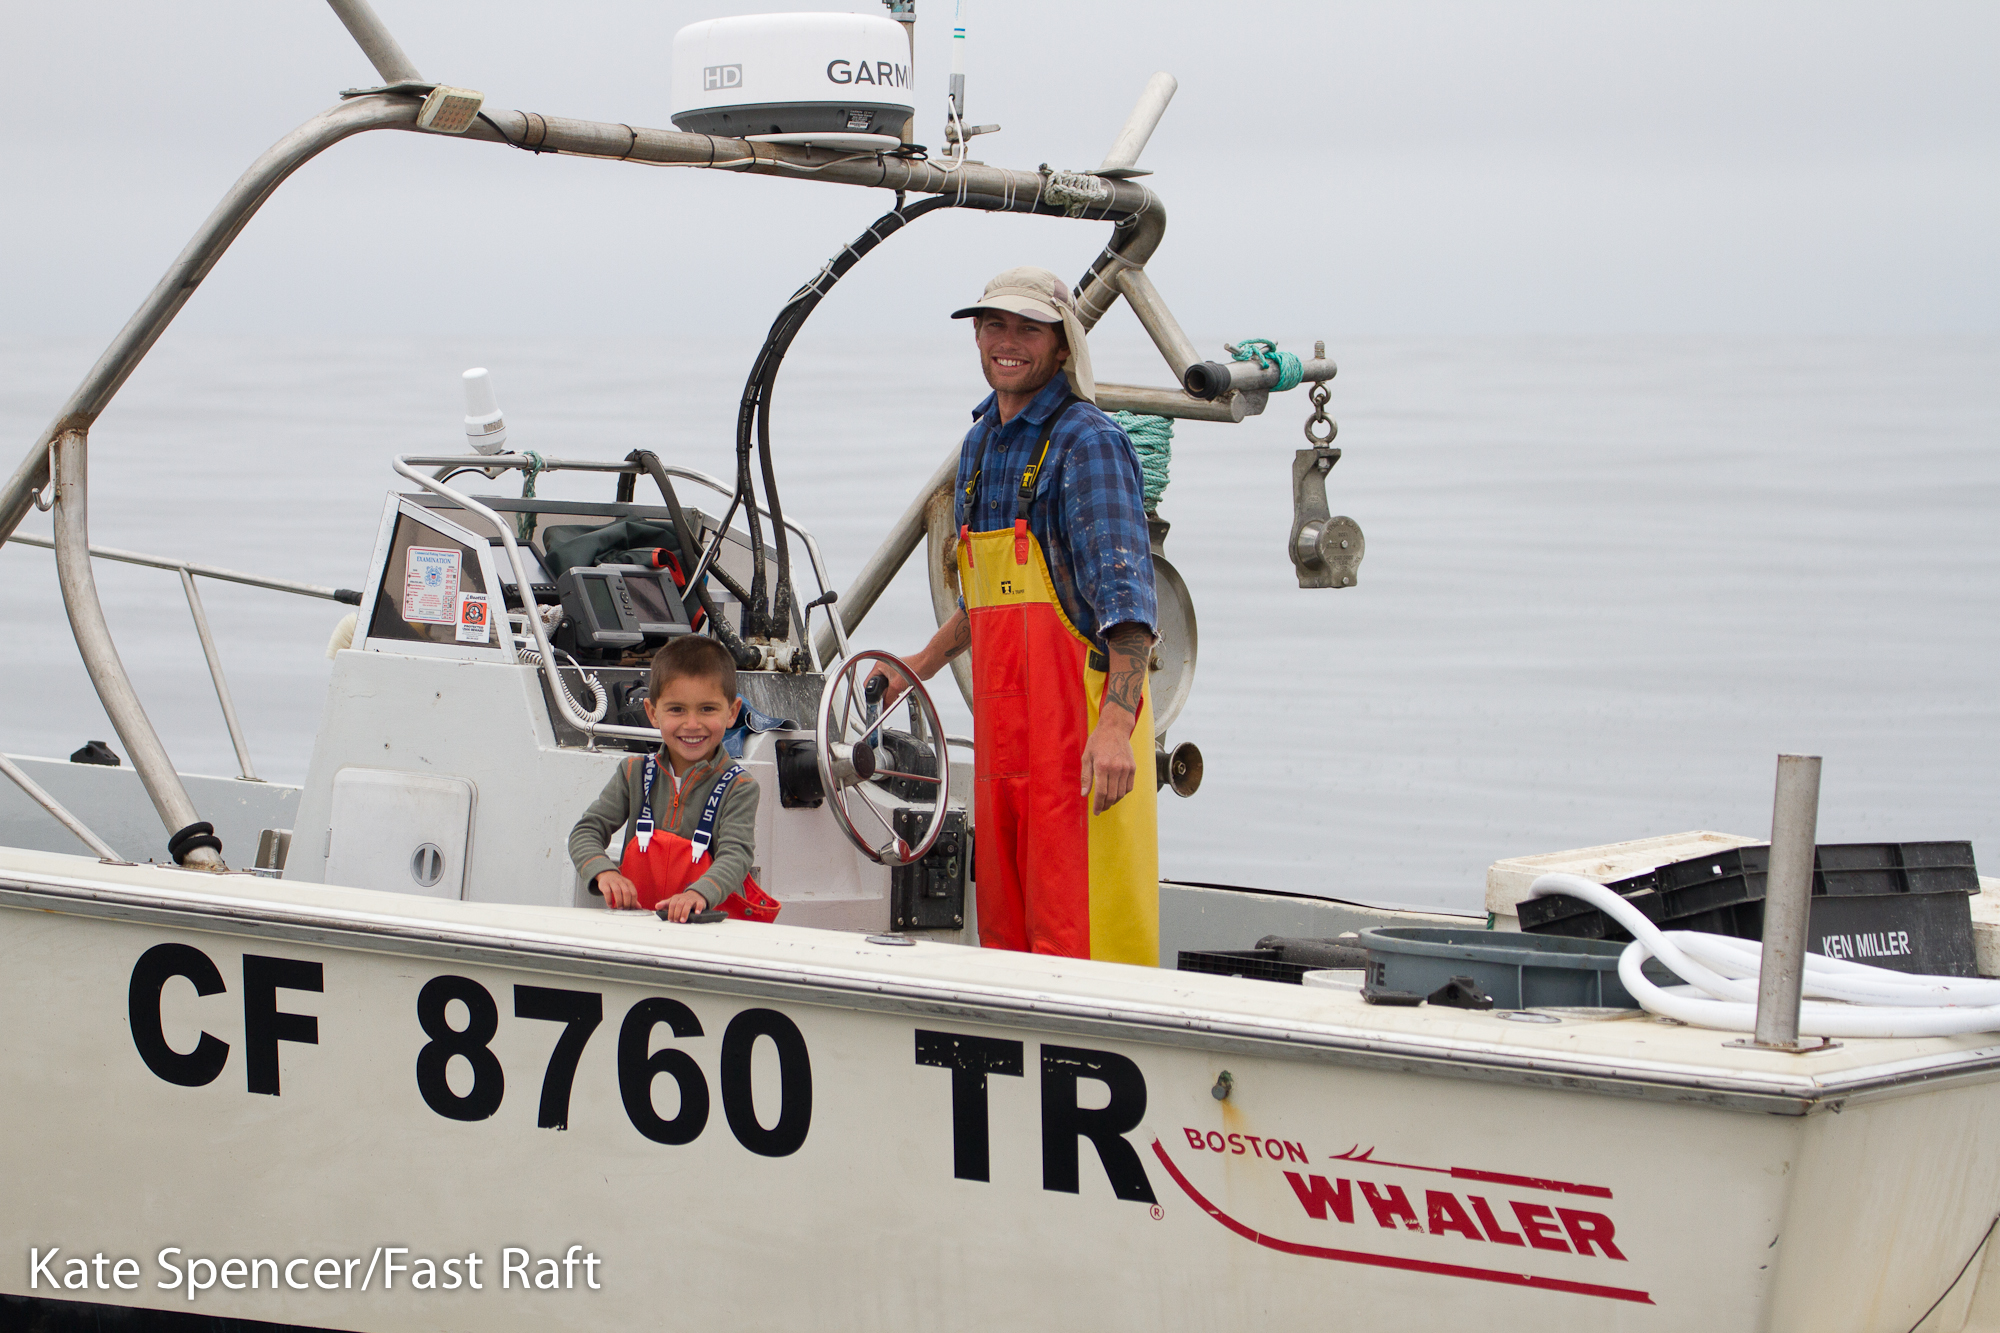 "Fisherman Calder Deyerle and his 5-year old son, Miles, immediately reported the distressed whale. Miles insisted they stay with the whale until a response team arrived because, as he said, ""saving an injured animal is more important."""